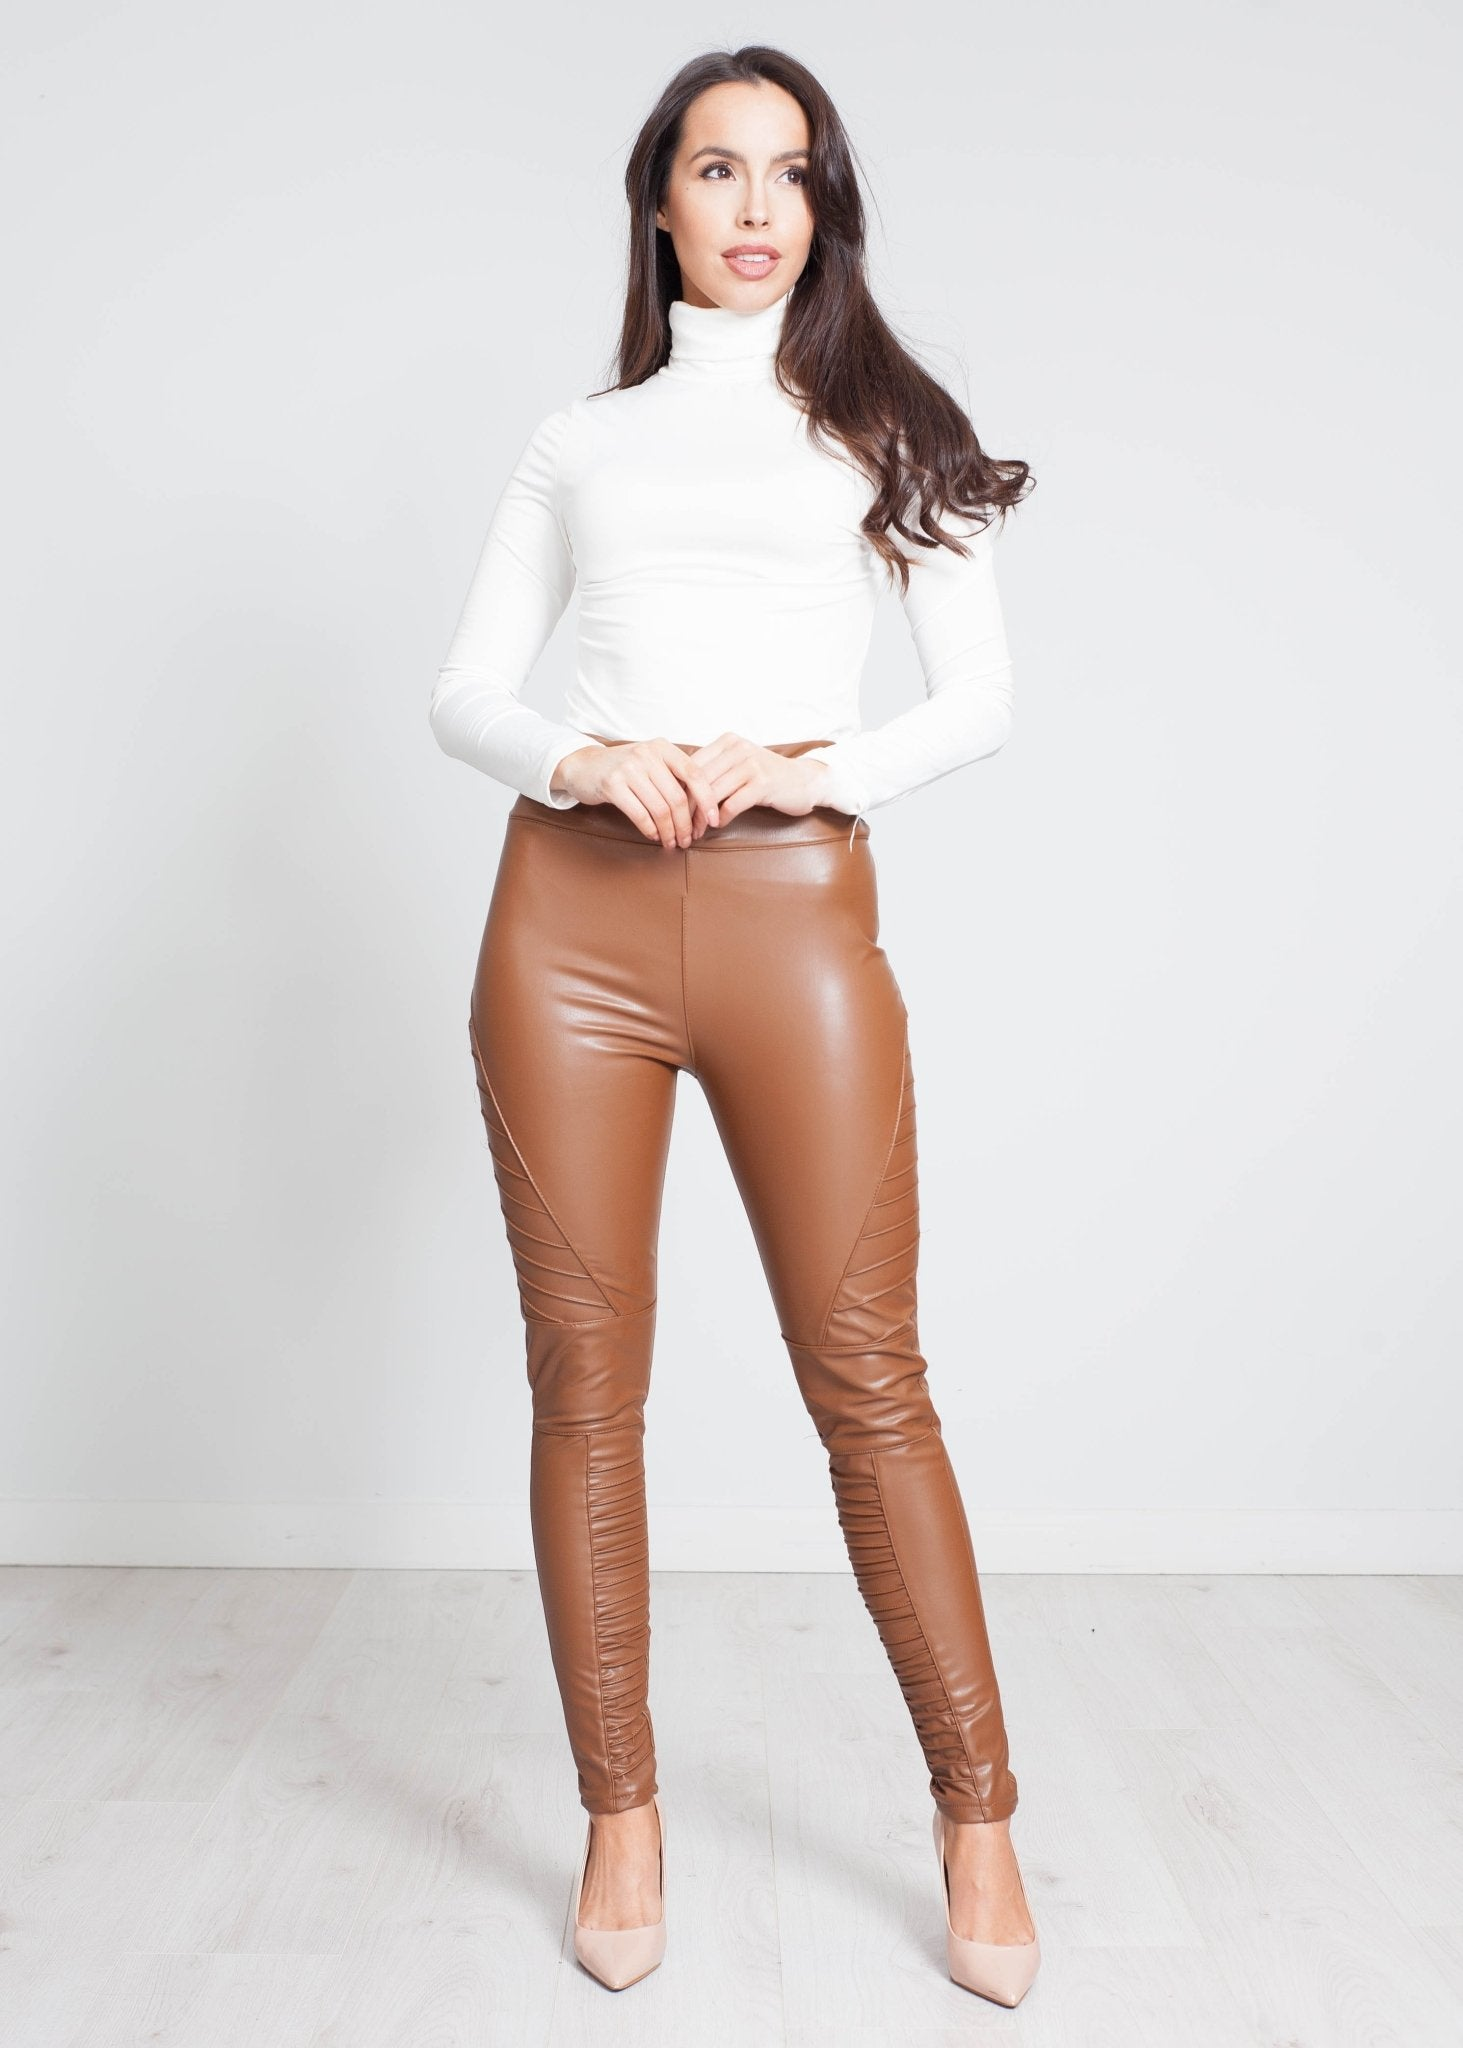 Yasmin Moto Legging In Tan - The Walk in Wardrobe